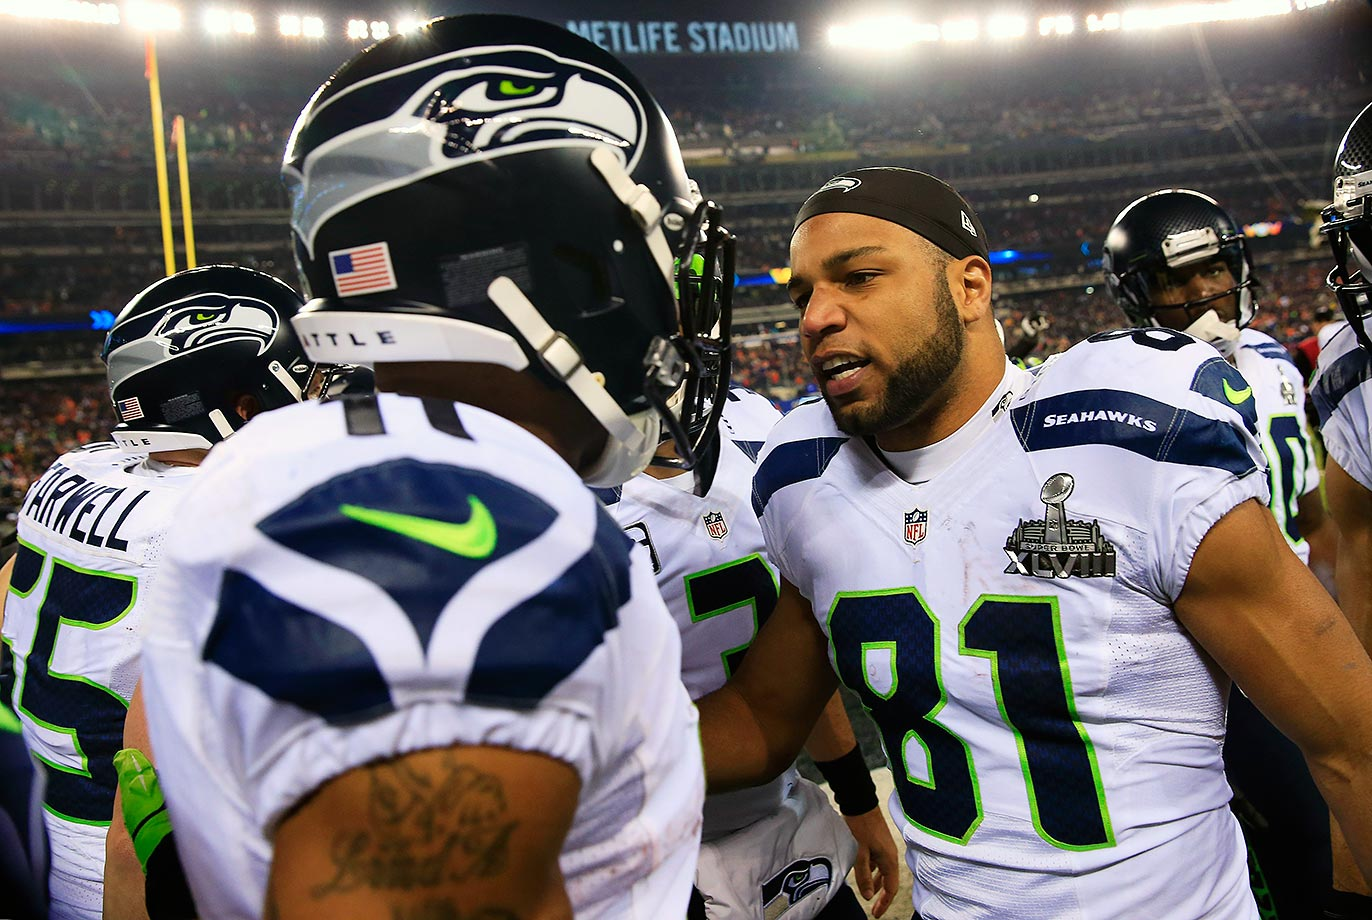 The incident was kept under wraps for almost a year before it was revealed that the two Seattle receivers got into a fight before the Seahawks took on the Broncos in the 2014 Super Bowl. Receiver Michael Robinson eventually broke up the fracas.